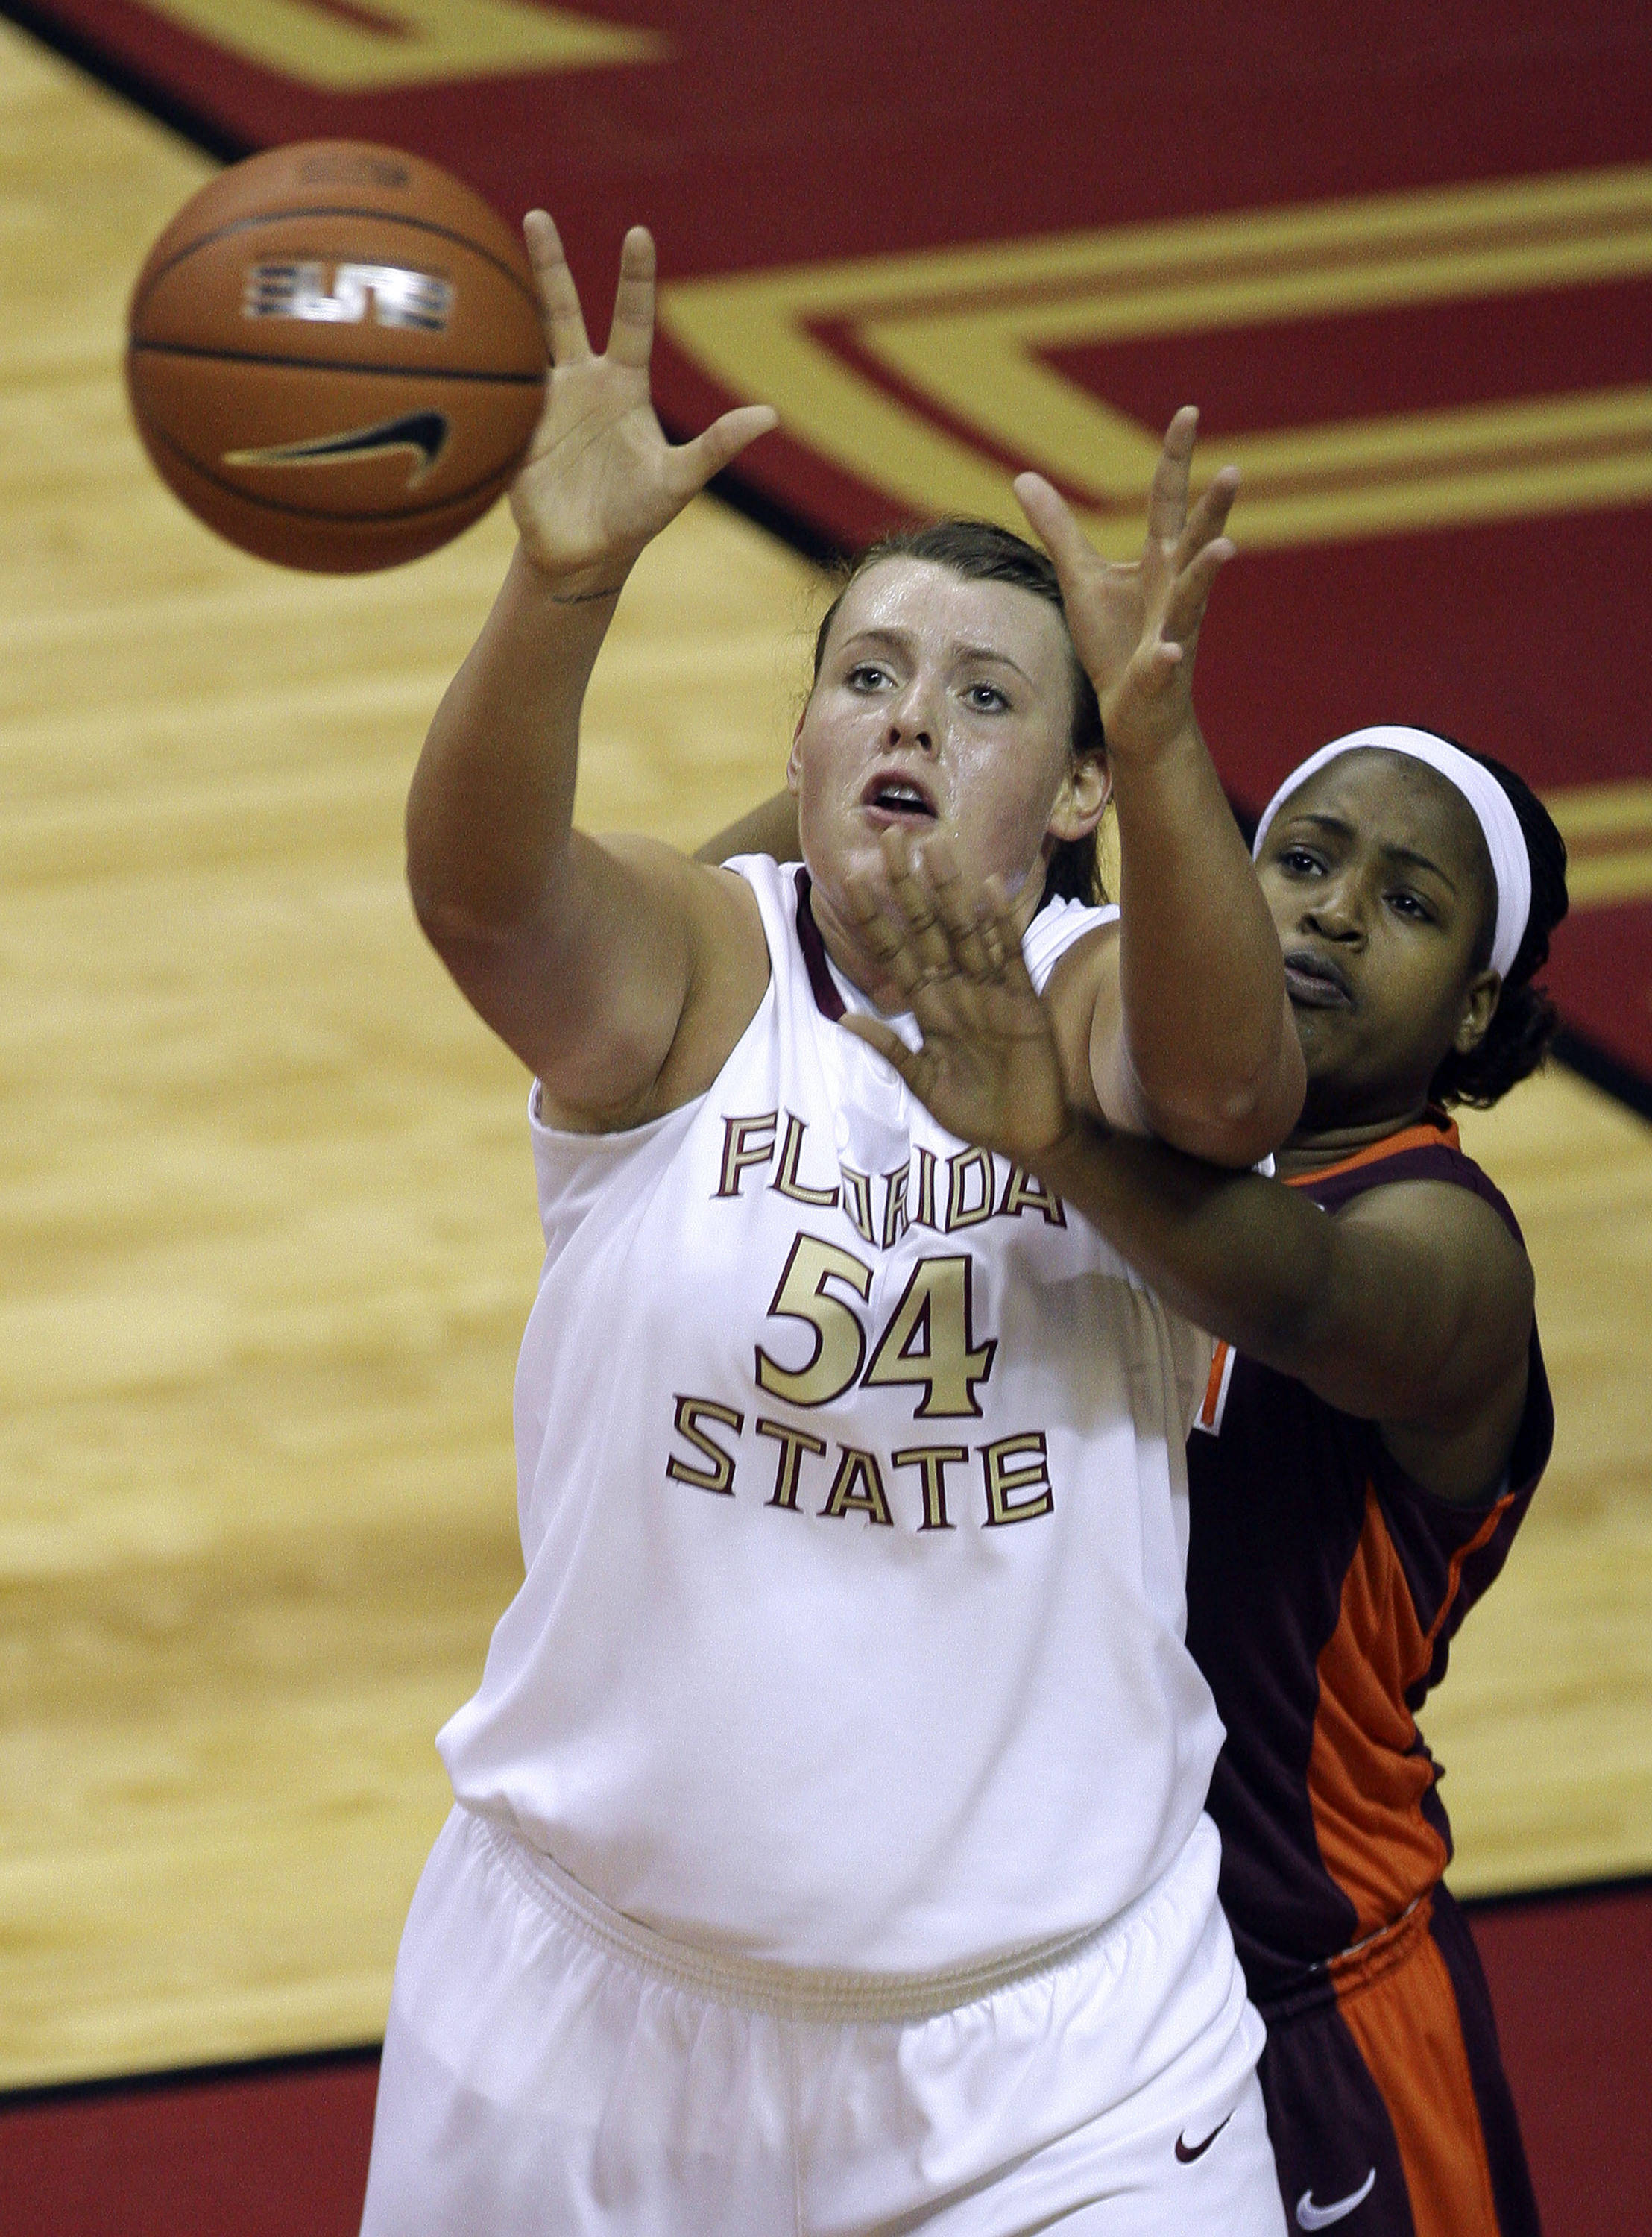 Florida State's Cierra Brevard (54) catches a first-half pass as Virginia Tech's Taylor Ayers attempts to defend during an NCAA college basketball game, Thursday, Feb. 18, 2010, in Tallahassee, Fla. (AP Photo/Phil Coale)